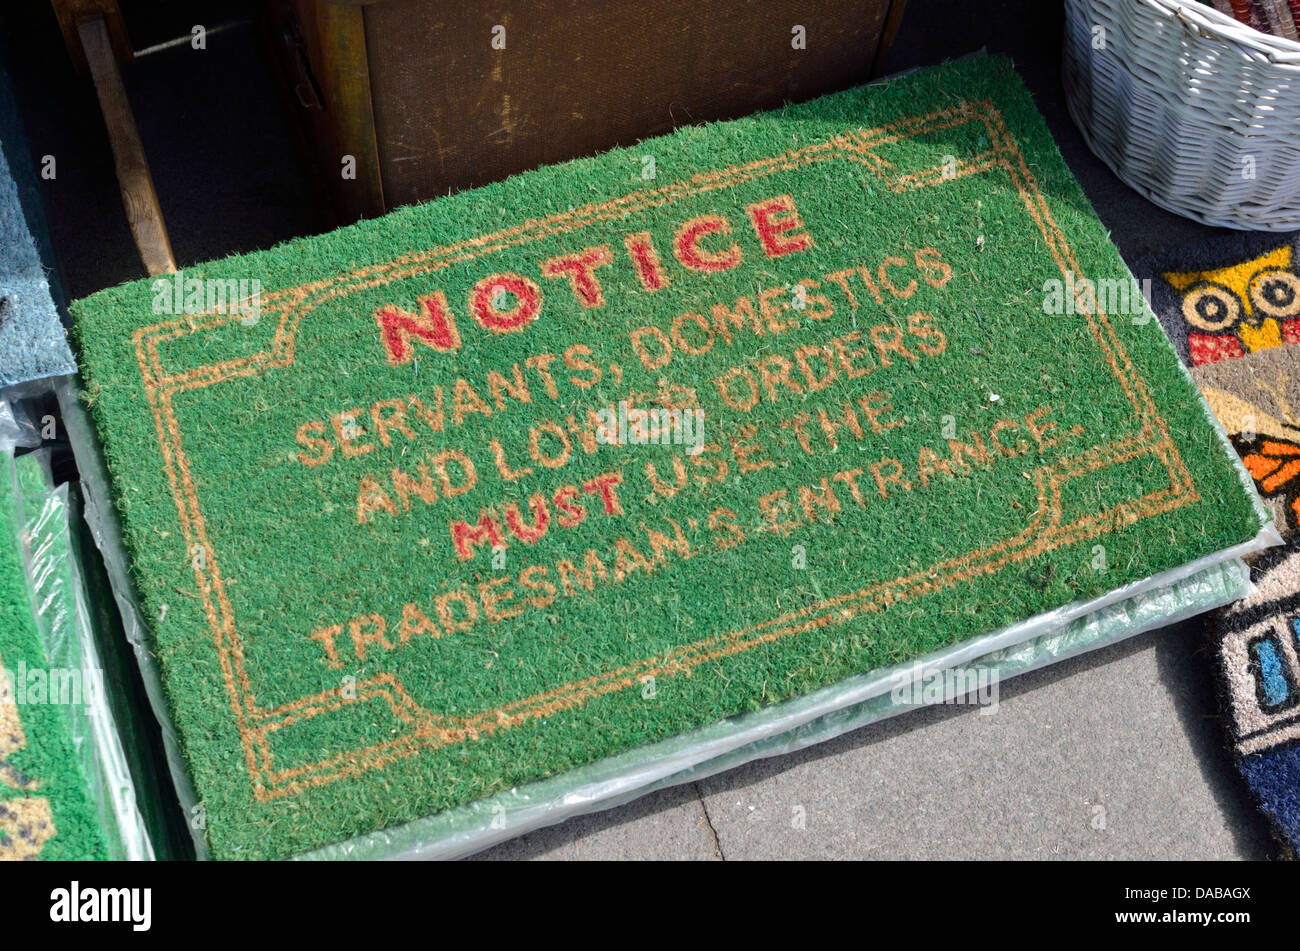 A UK doormat containing a notice to servants, domestics and lower orders to use the tradesman's entrance - Stock Image